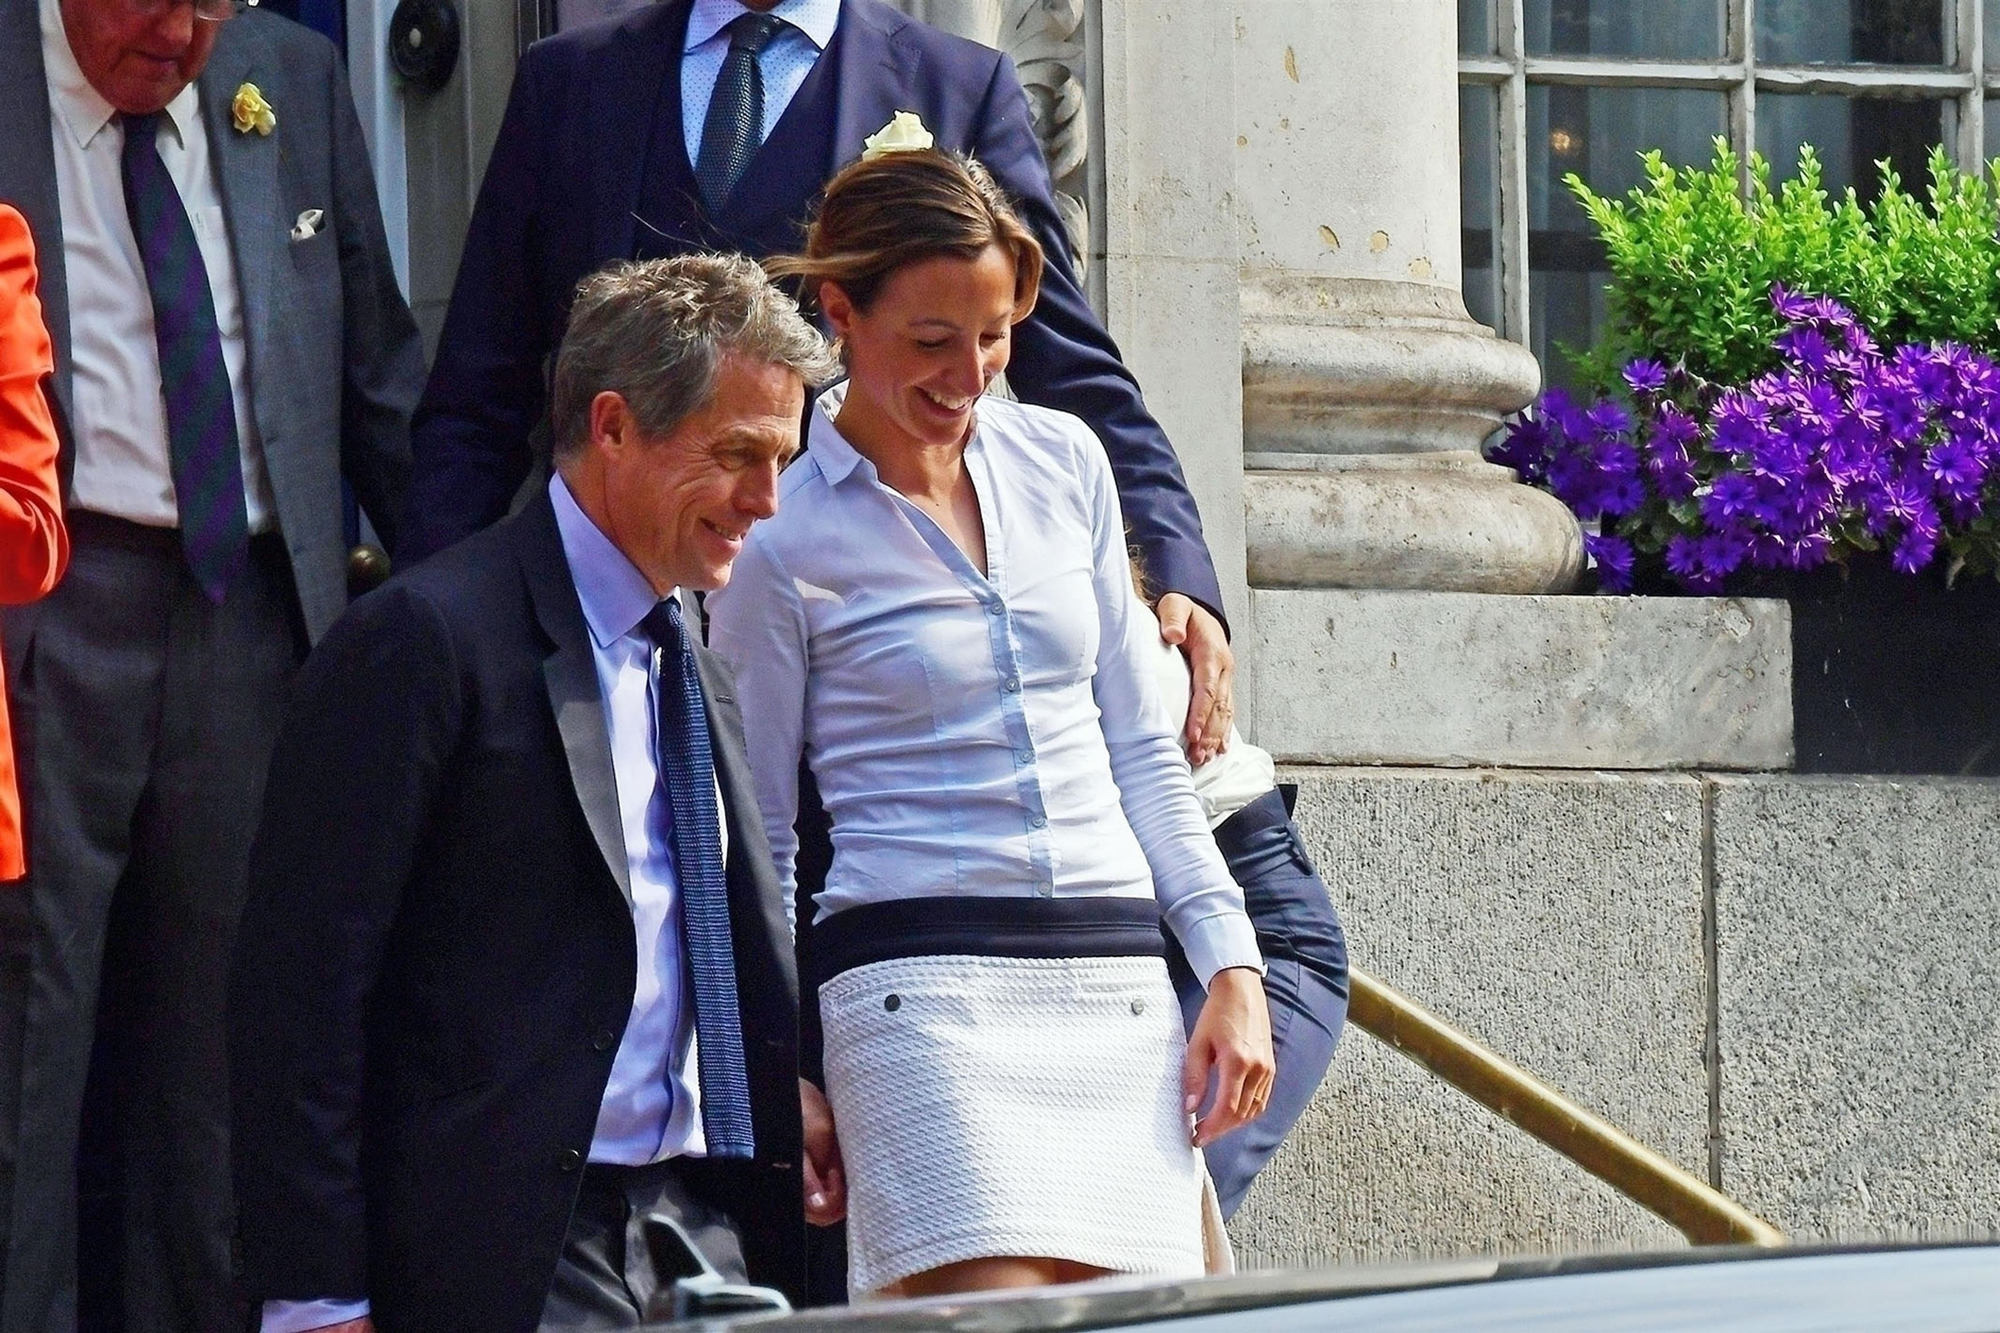 Hugh Grant and Anna Eberstein got married at the Chelsea registration office